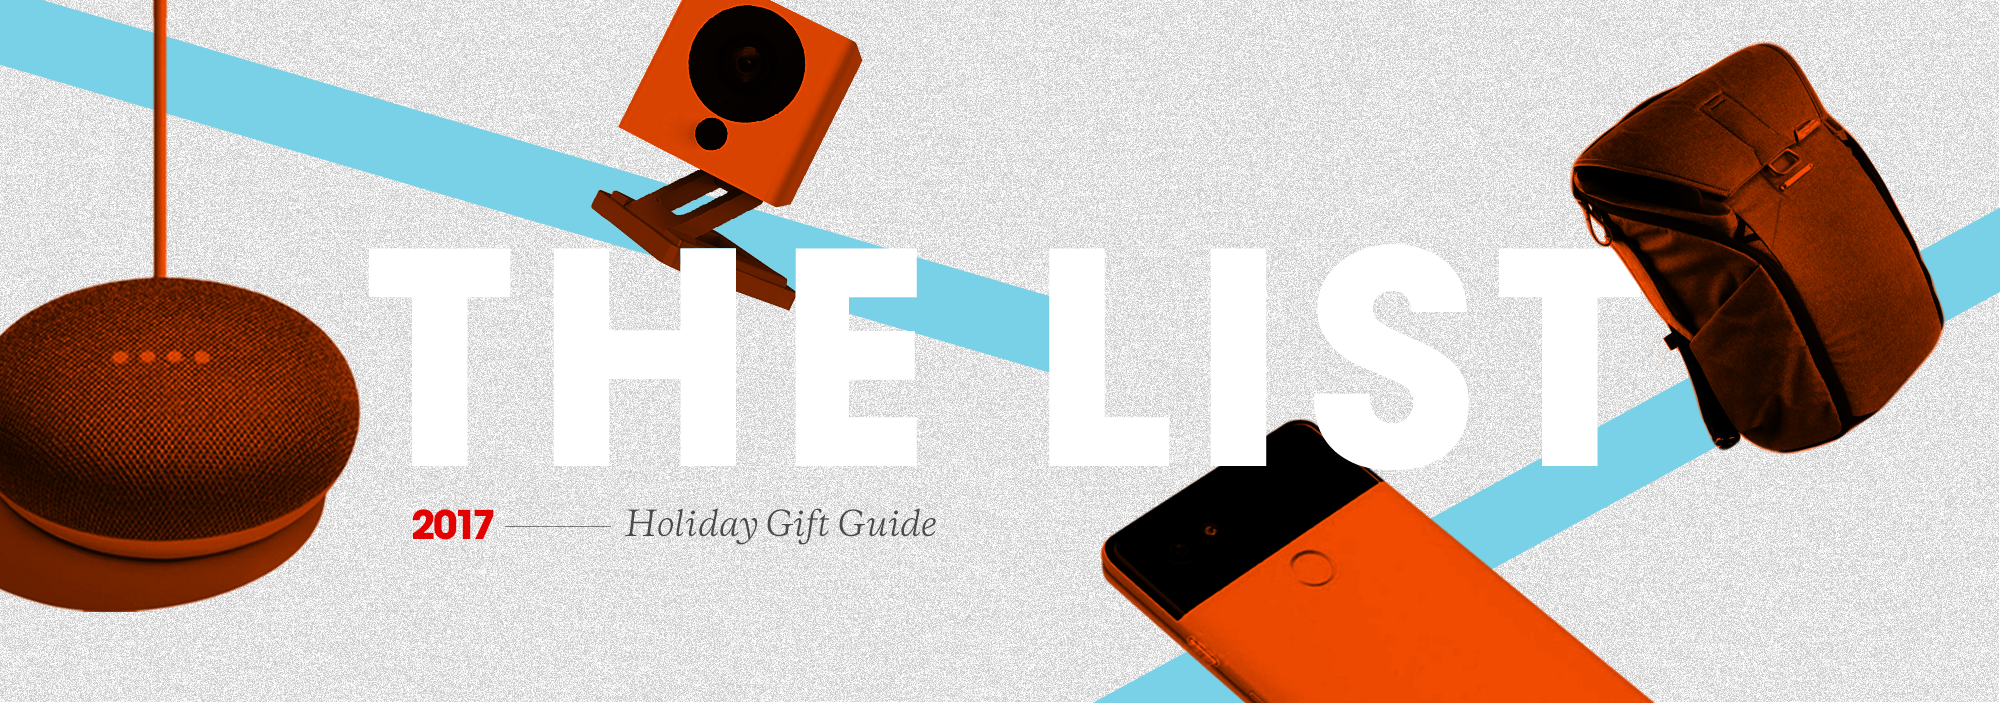 The Give And Receive Holiday Gift Guide